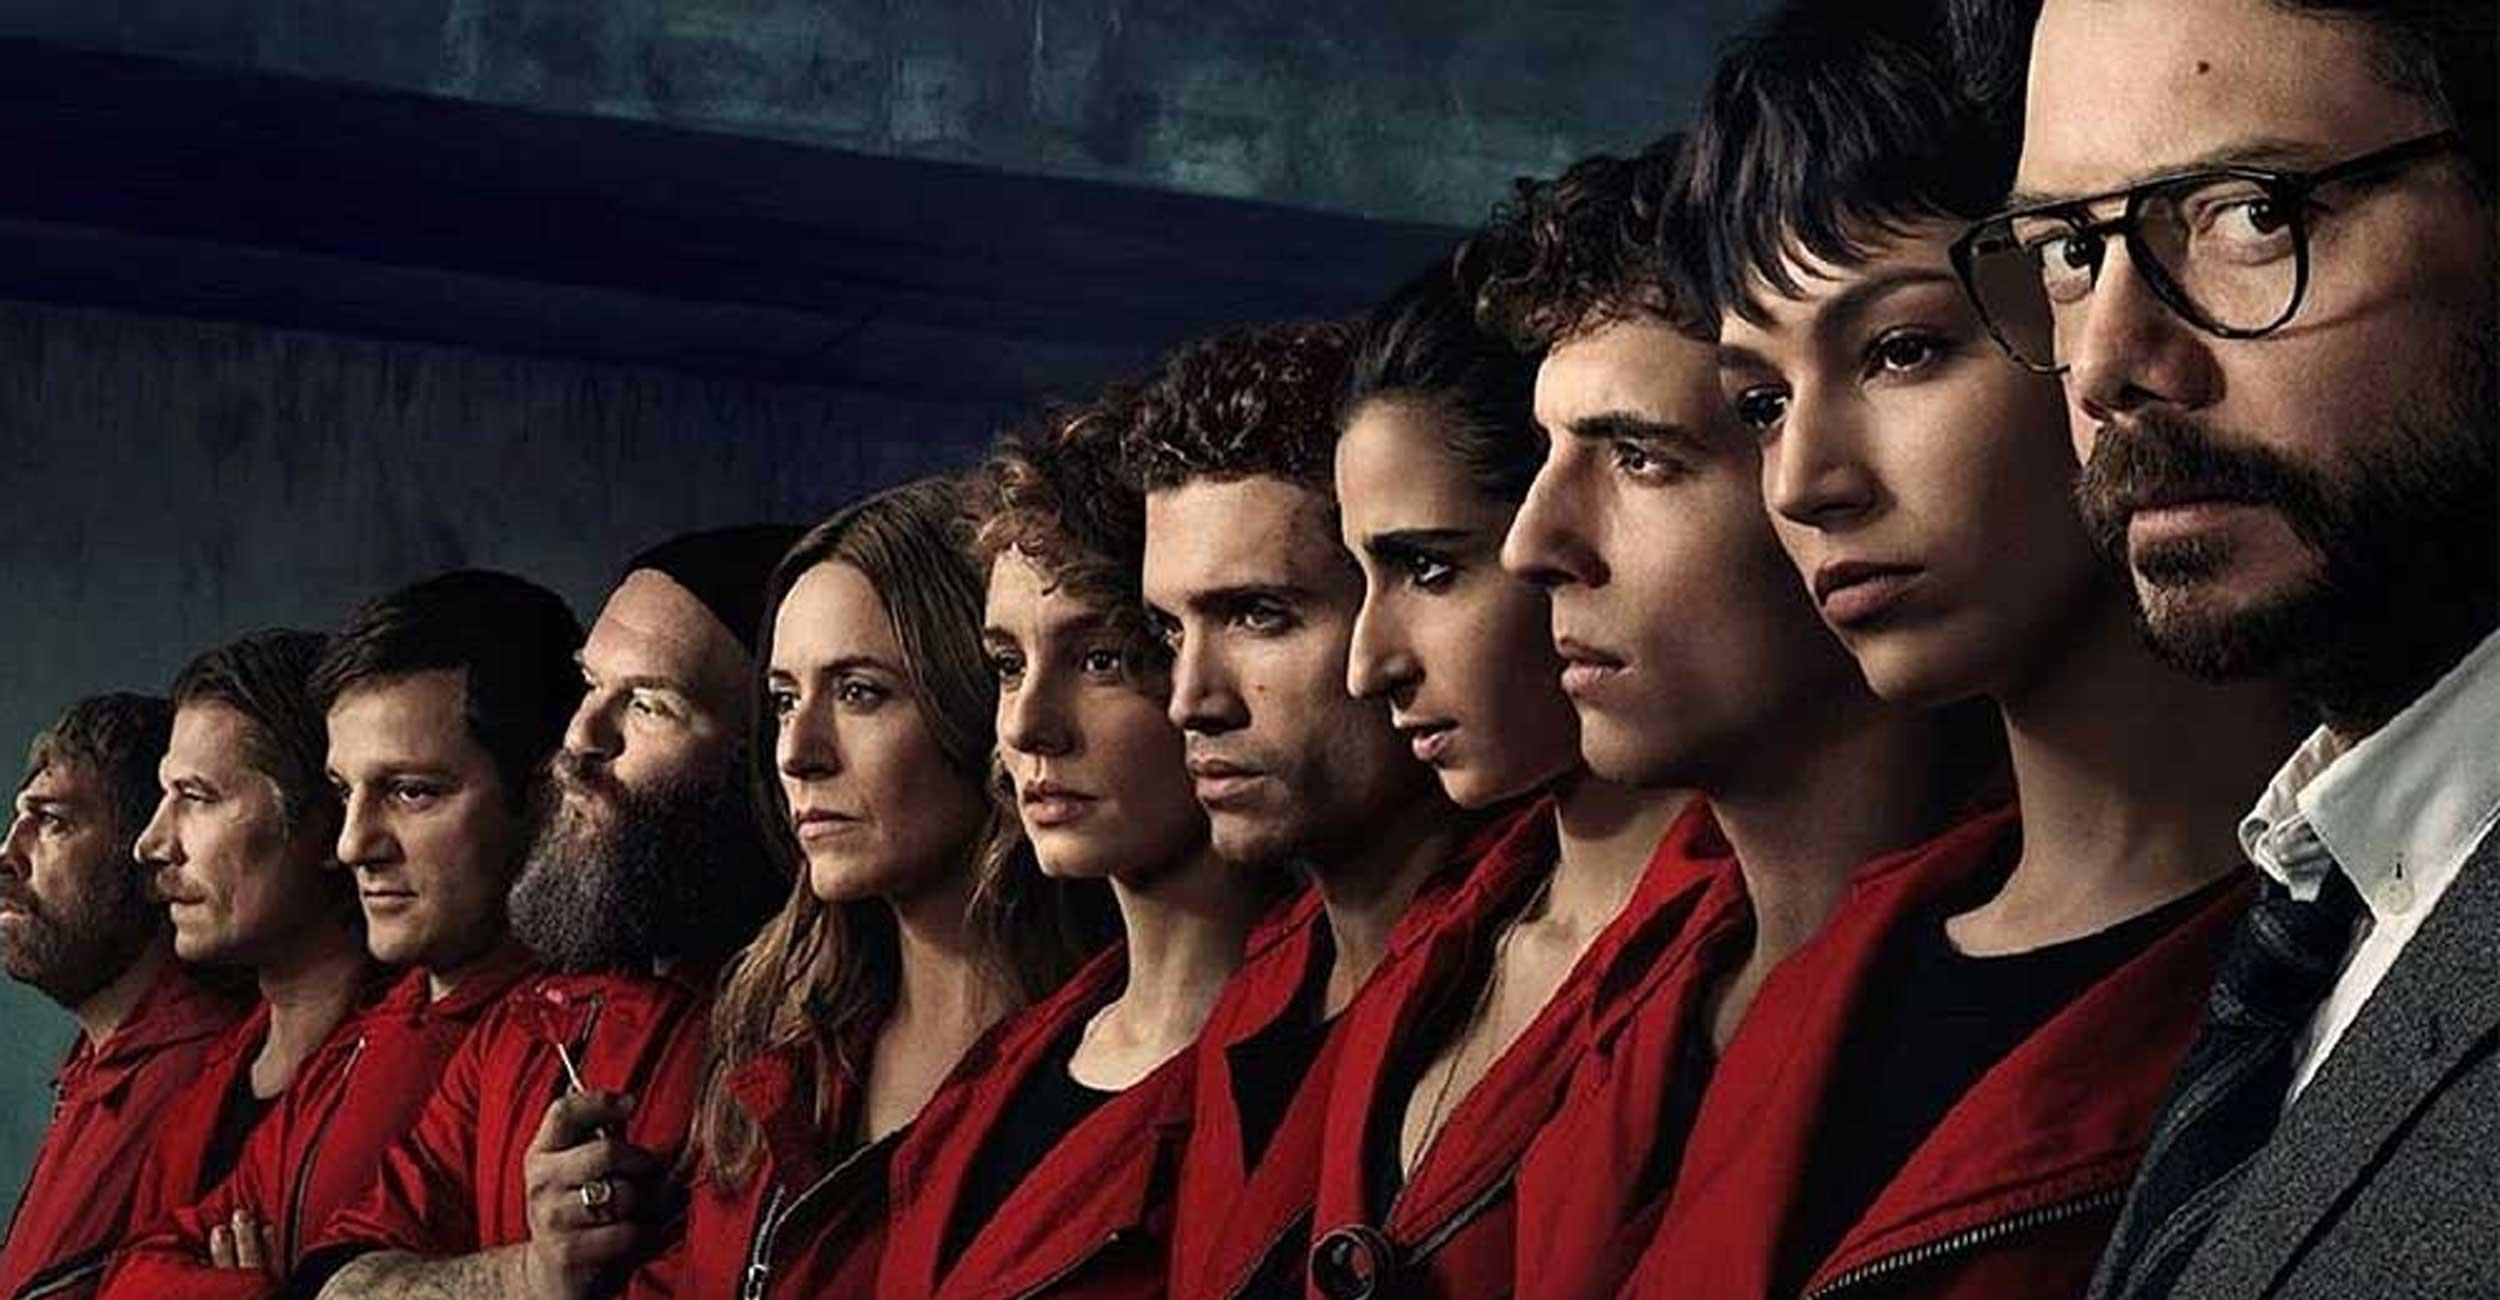 la casa de papel streaming free